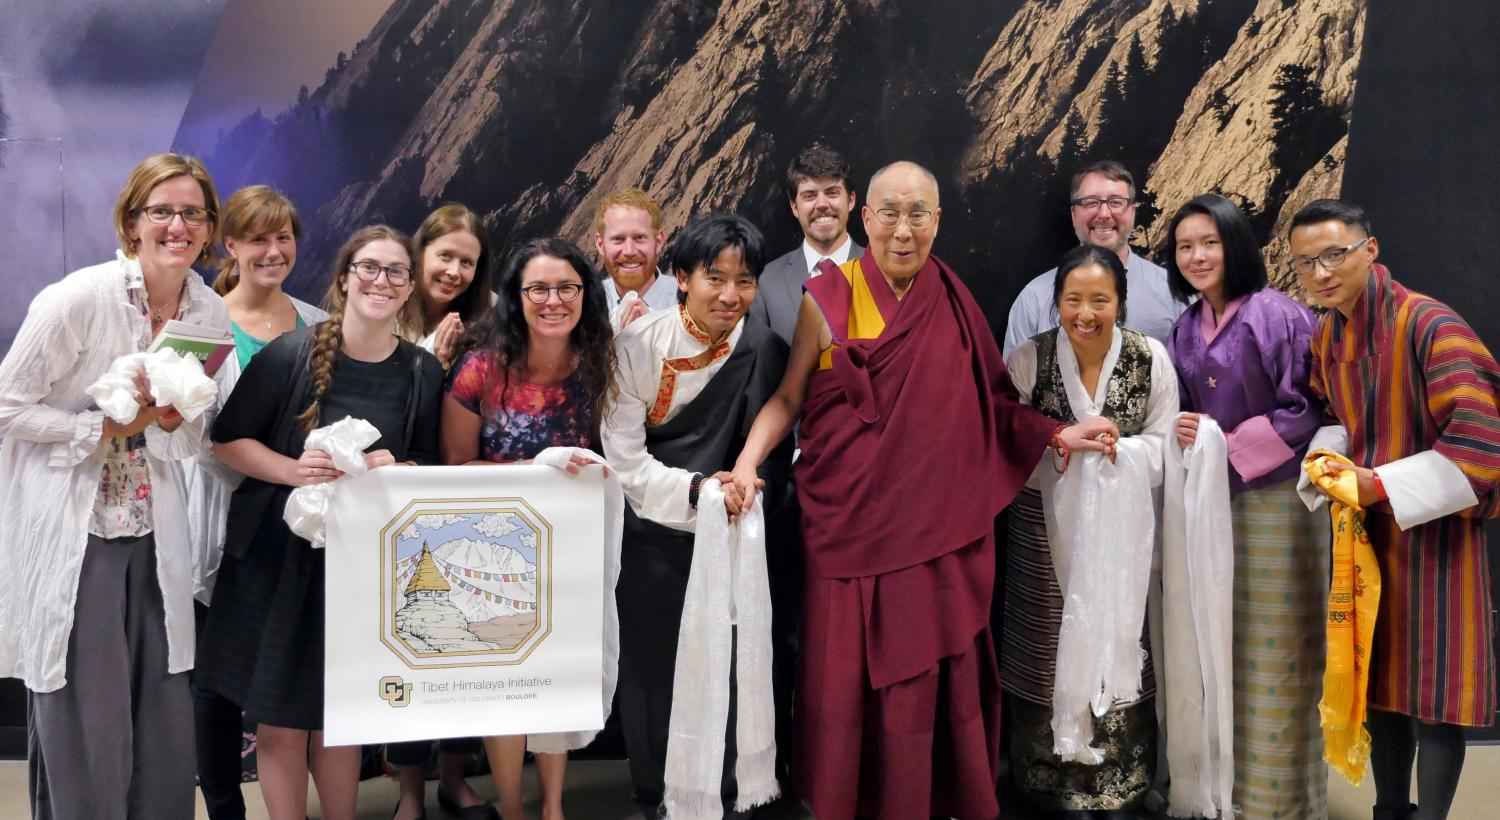 THI Audience with HHDL